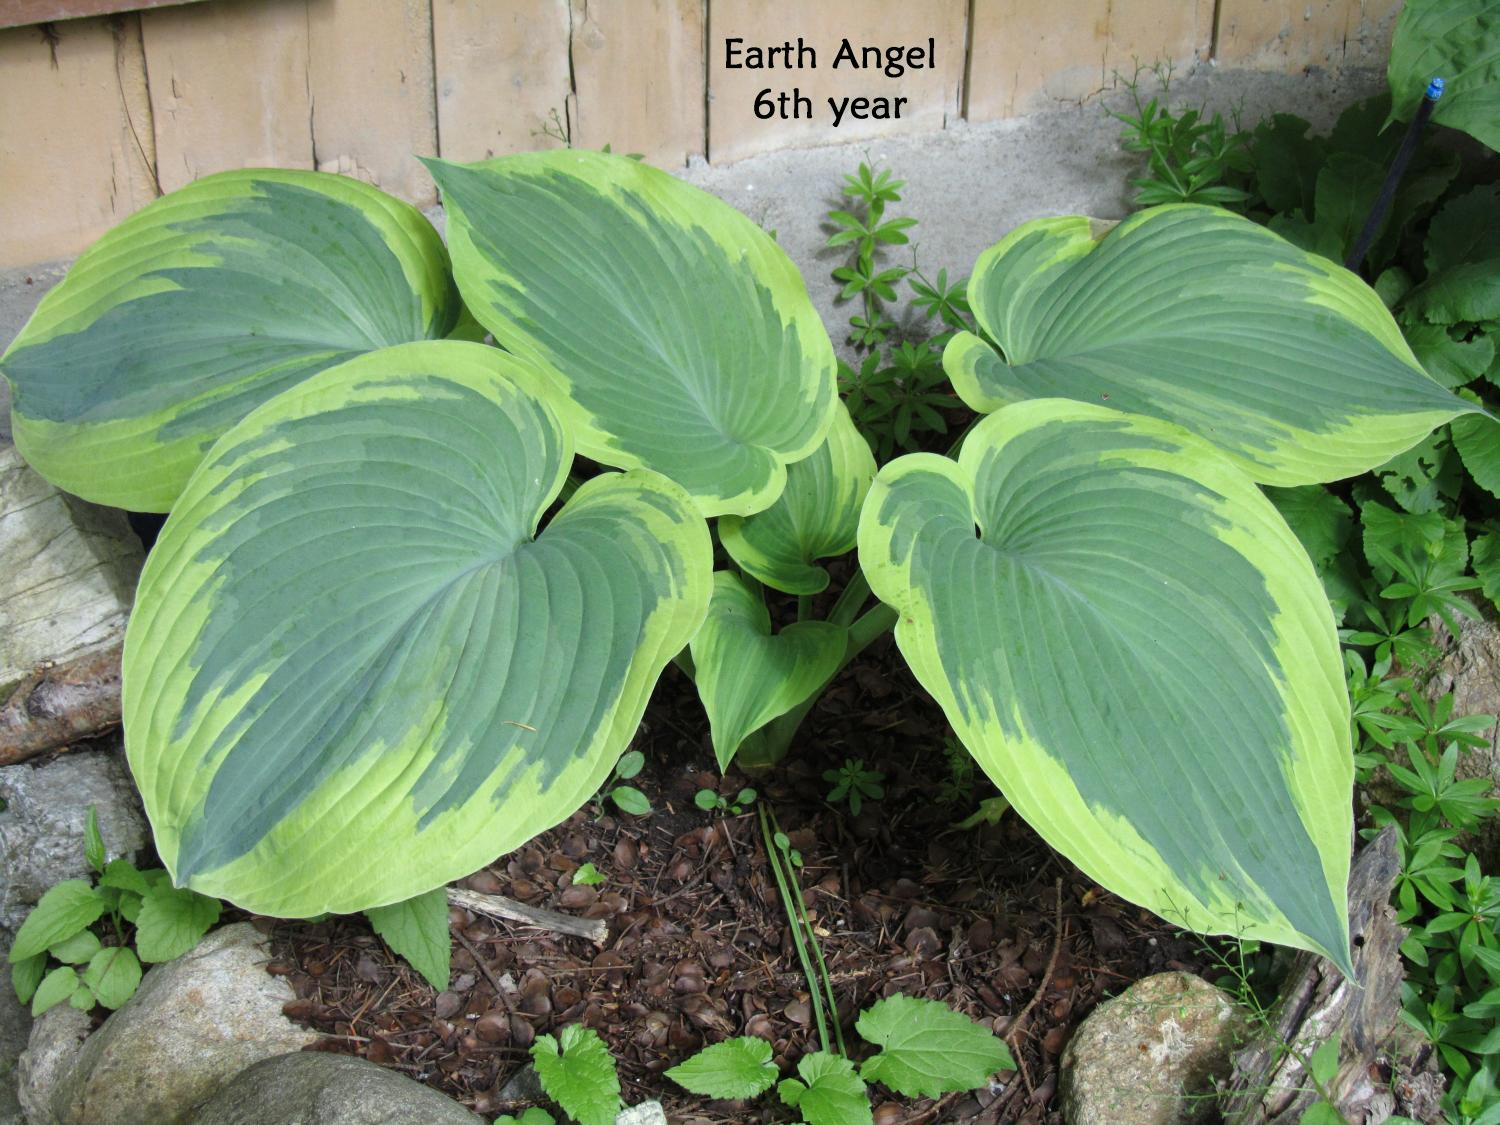 Earth Angel 6-13-12 (311)